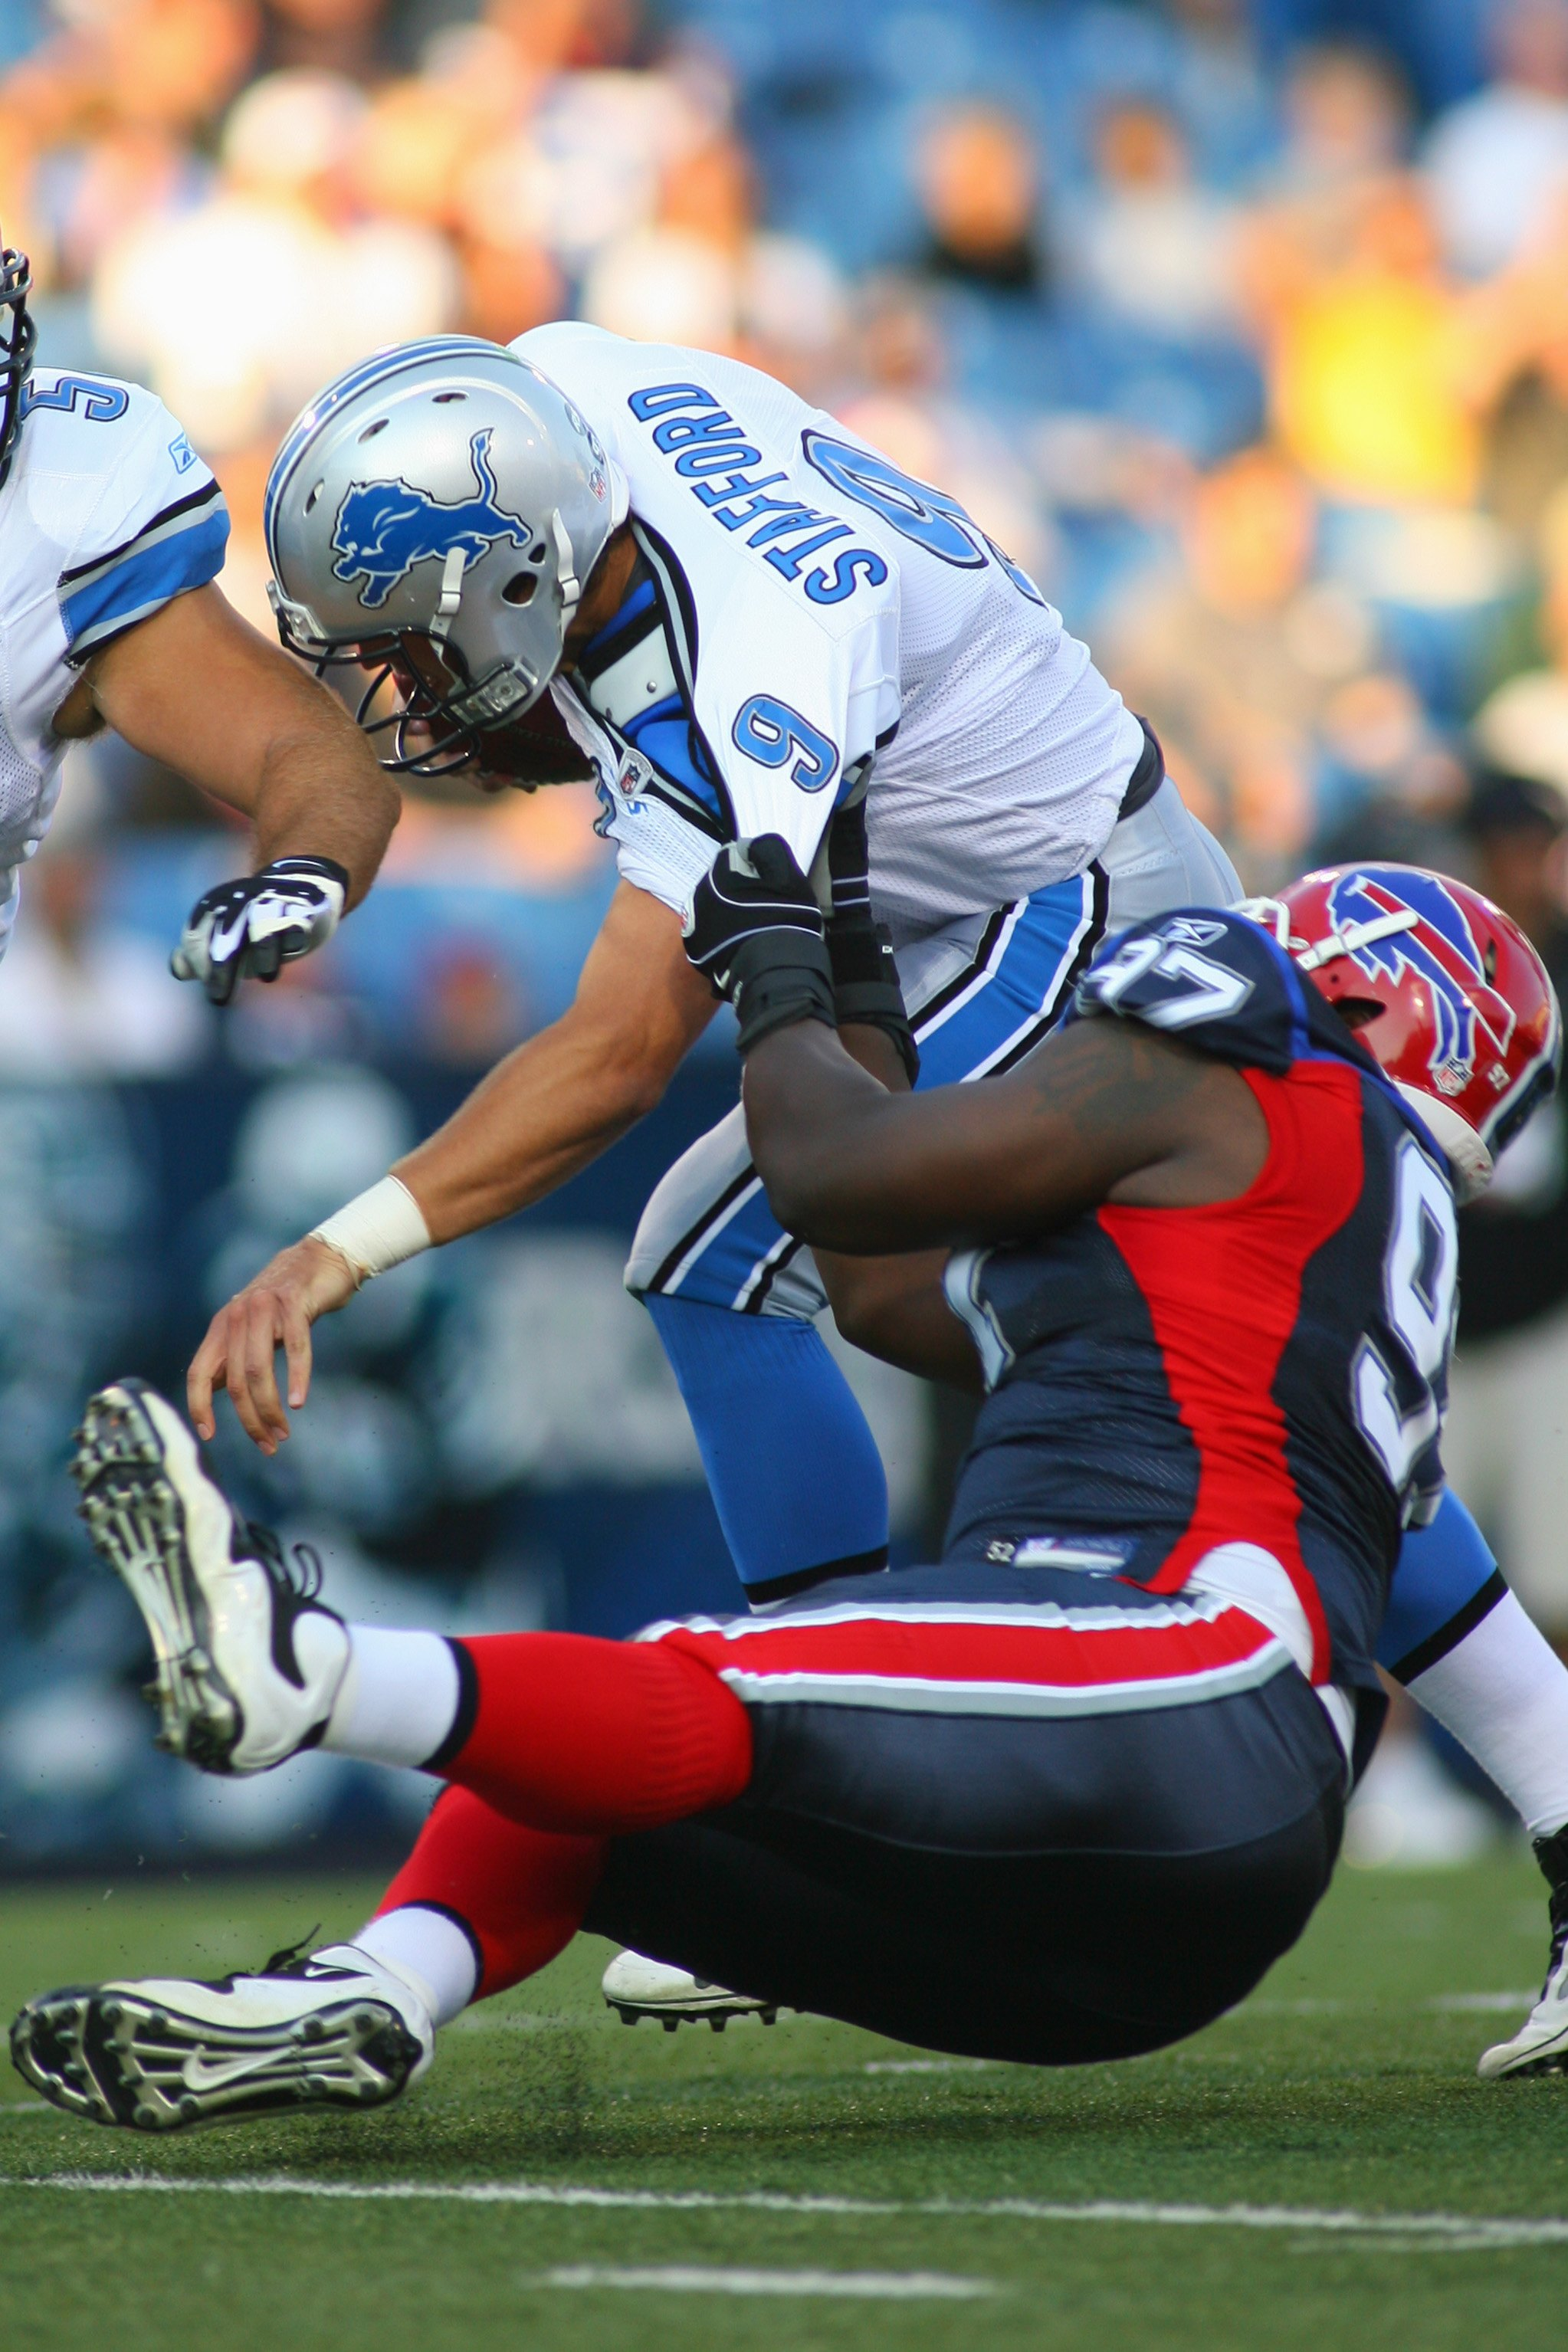 ORCHARD PARK, NY - SEPTEMBER 3:  John McCargo #97 of the Buffalo Bills sacks Matthew Stafford #9 of the Detroit Lions during the preseason game at Ralph Wilson Stadium on September 3, 2009 in Orchard Park, New York. (Photo by Rick Stewart/Getty Images)